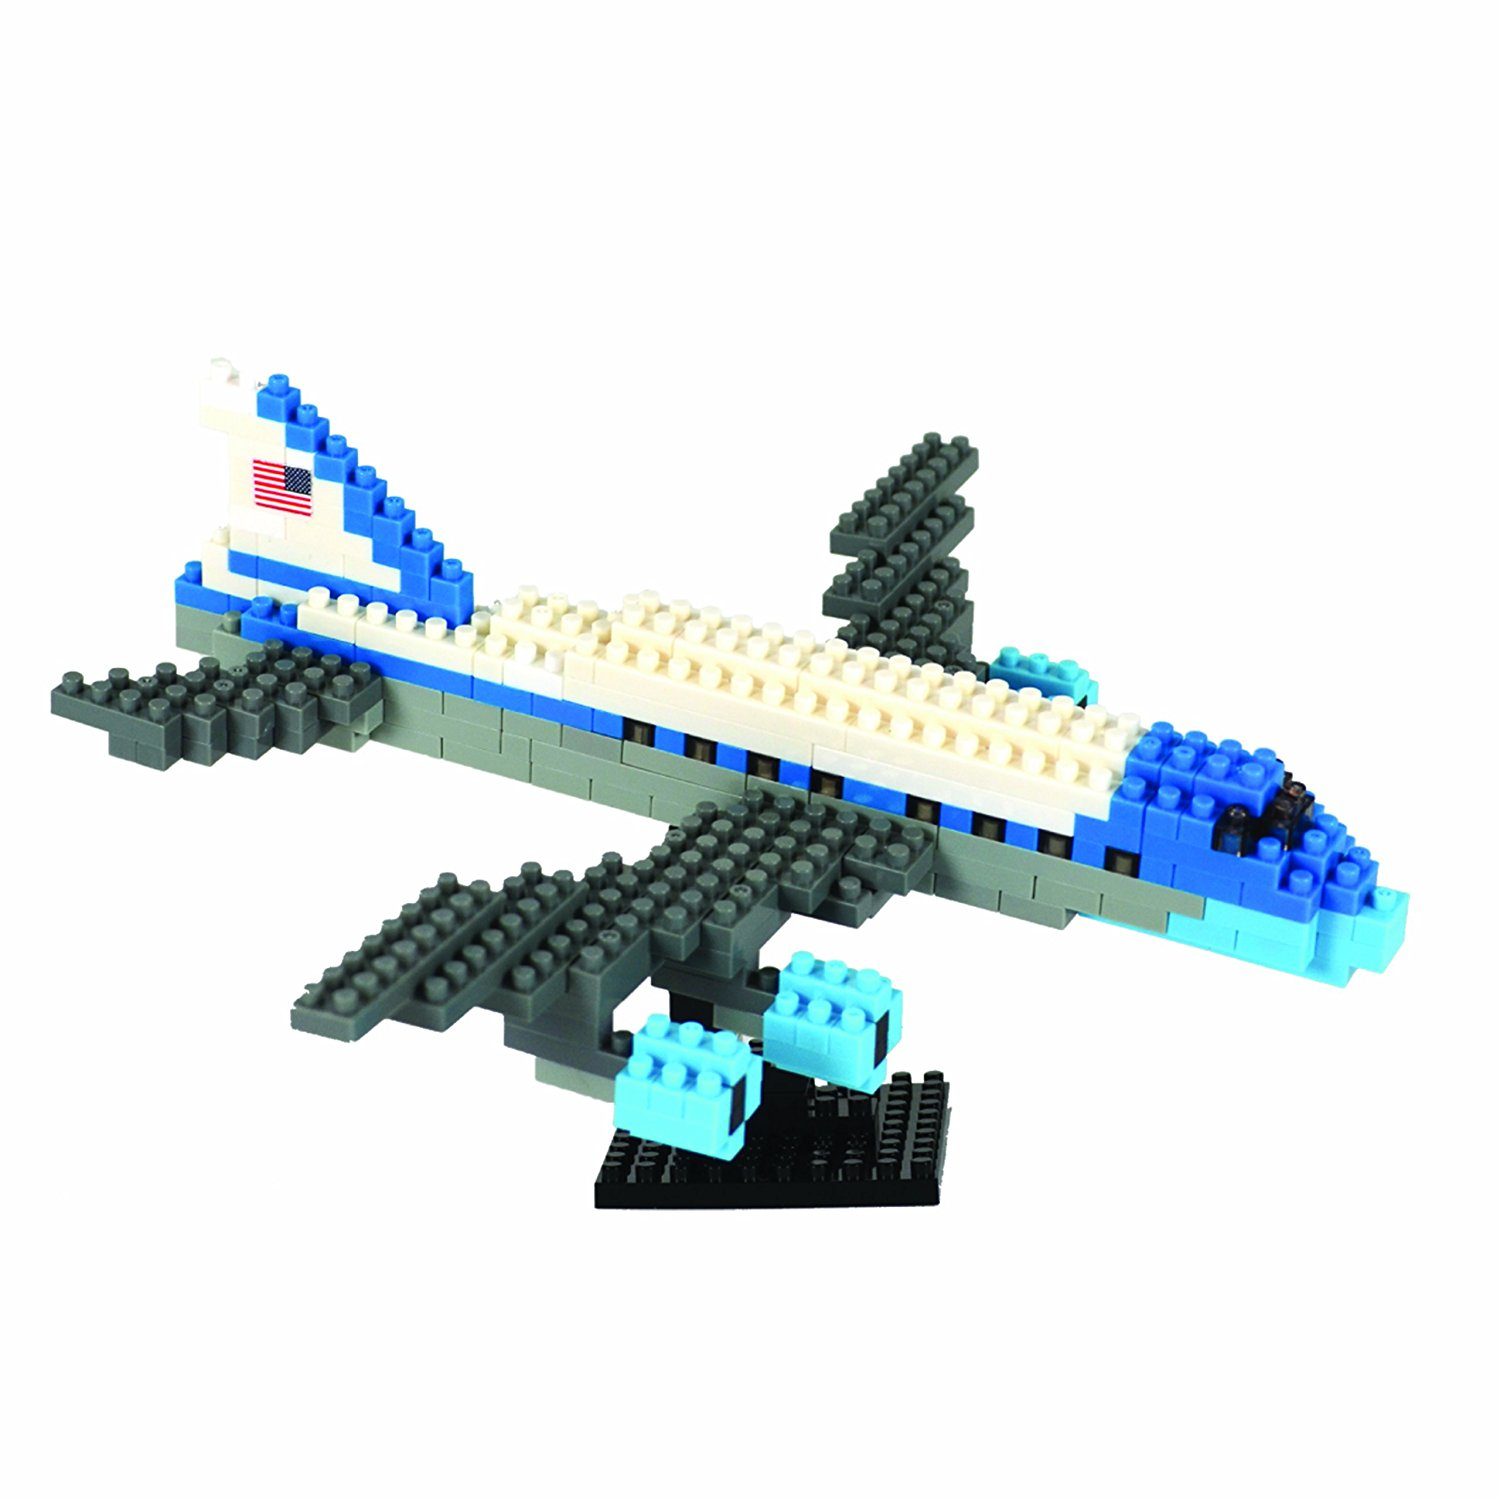 Air Force One Building Kit, A challenging building set especially designed for older... by